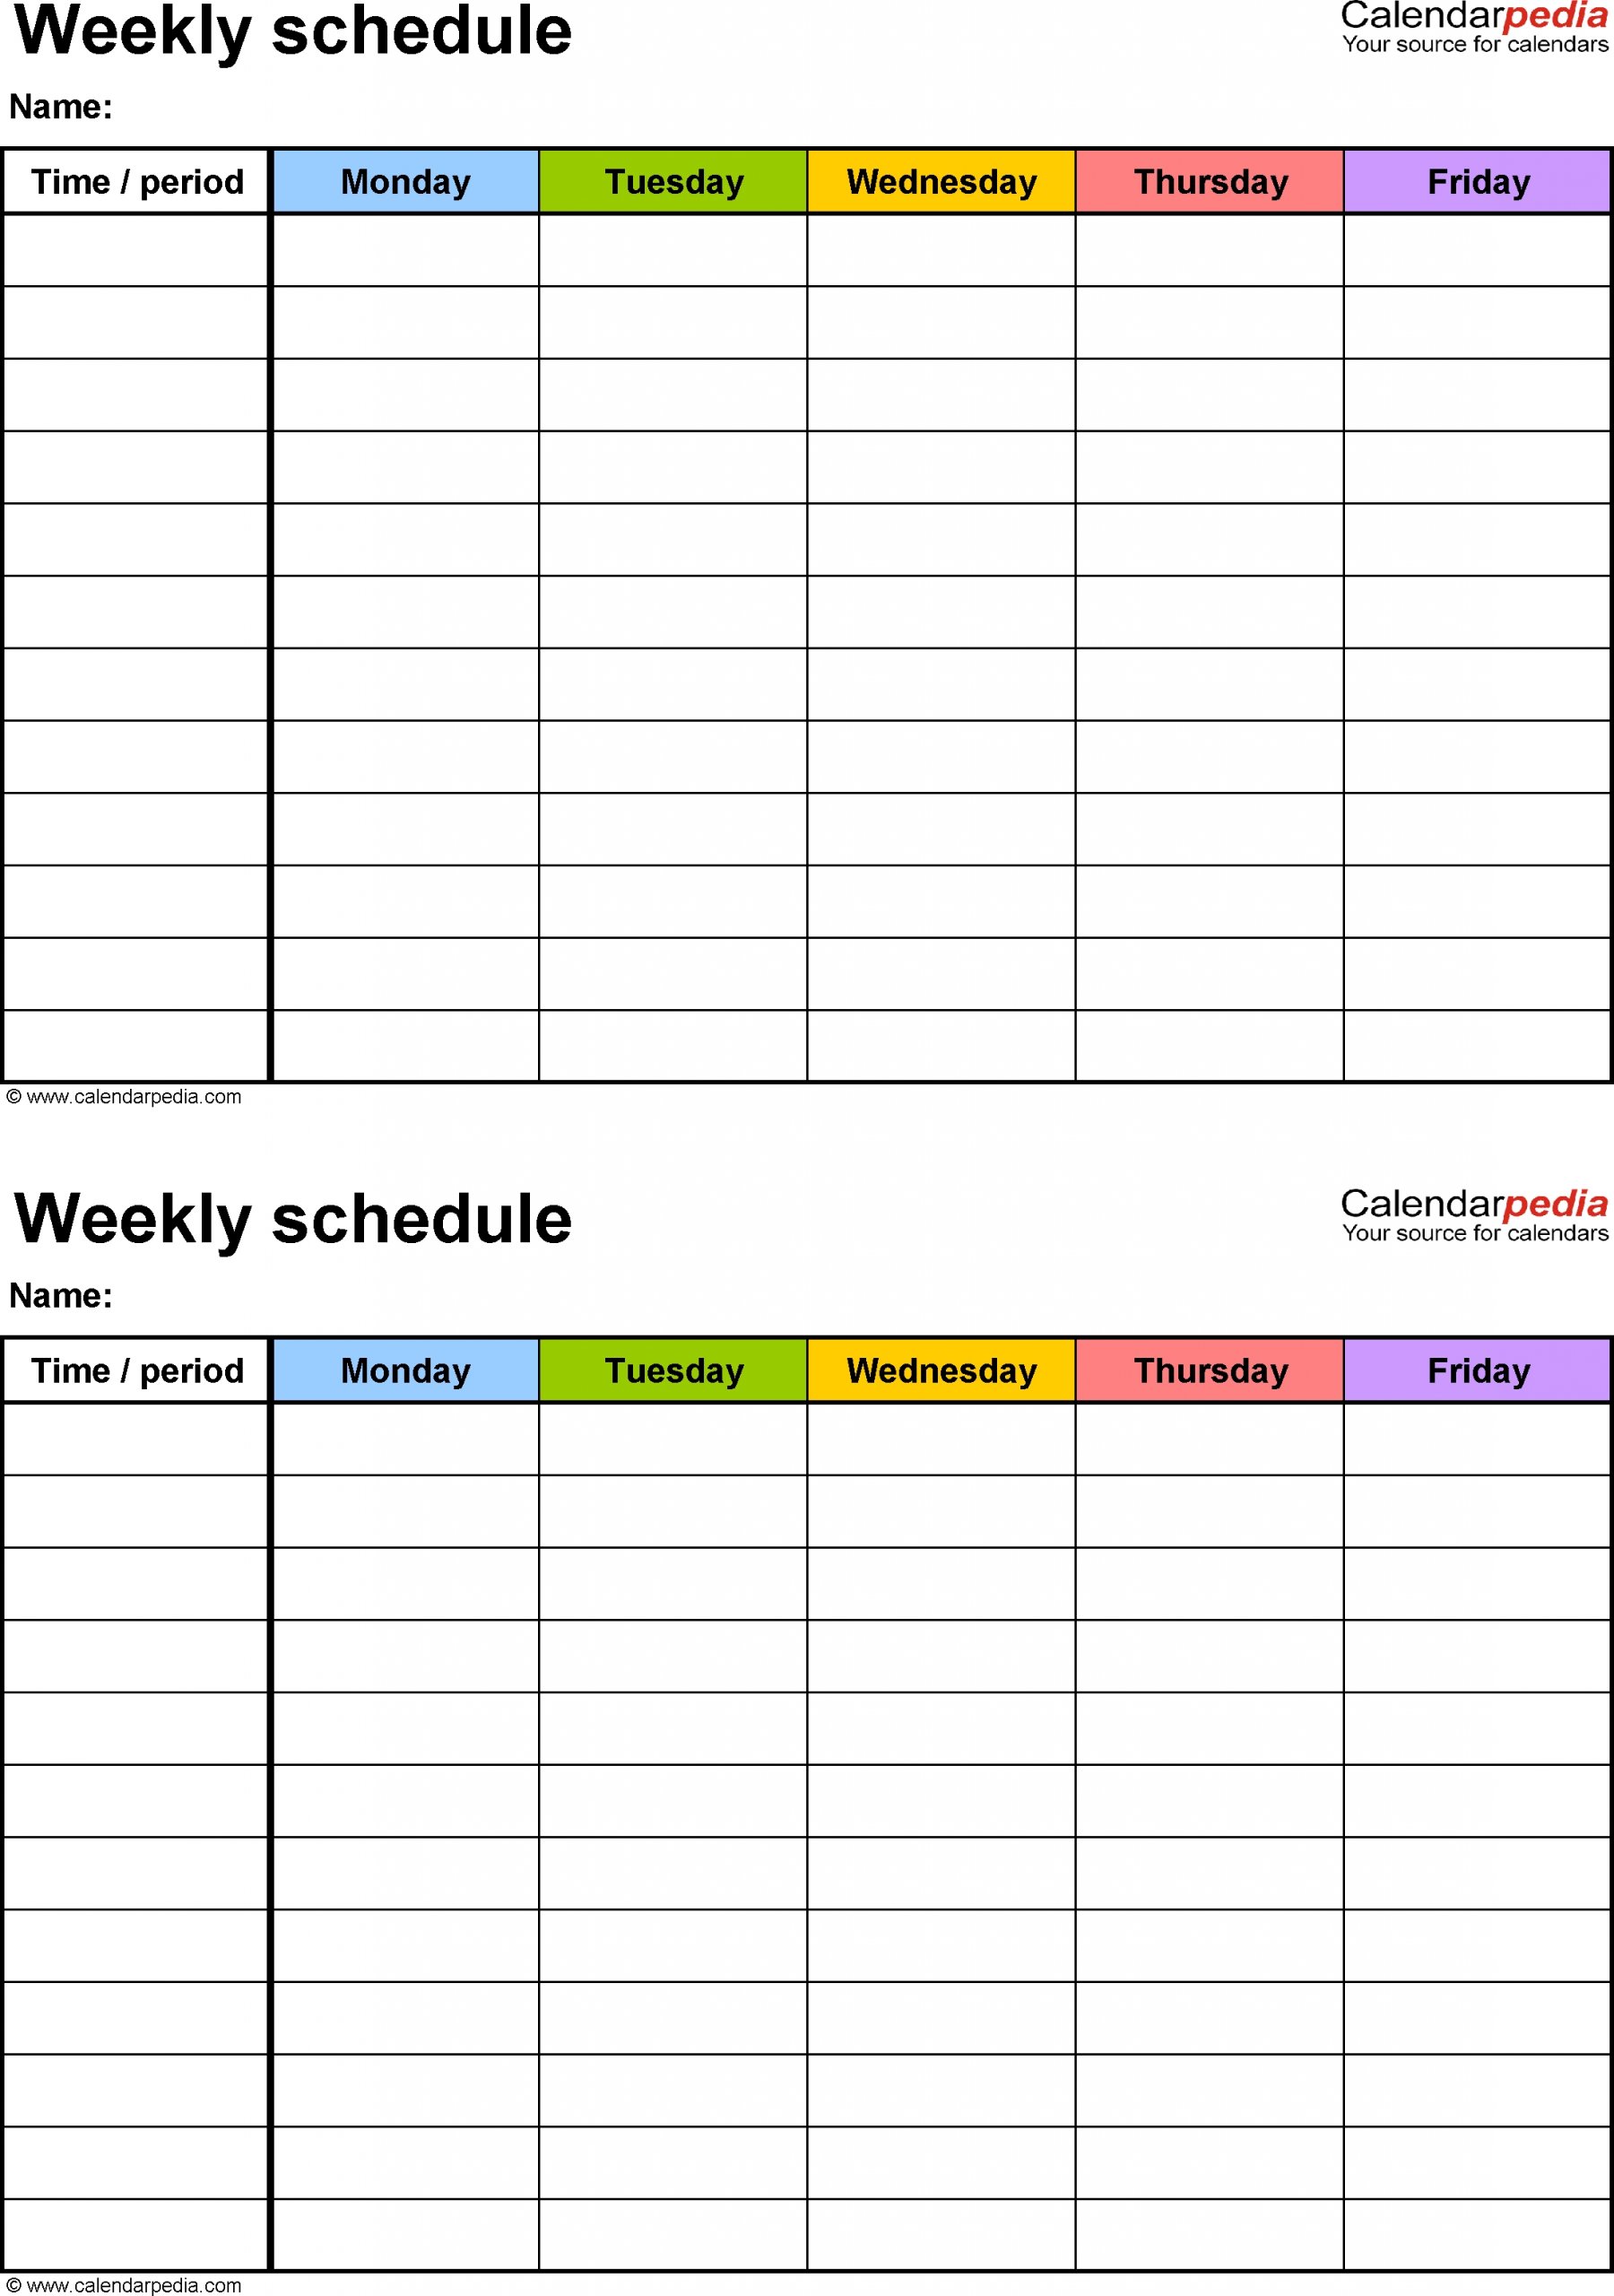 Monday Through Friday Planning Template   Calendar Monday Through Friday Calendar Word